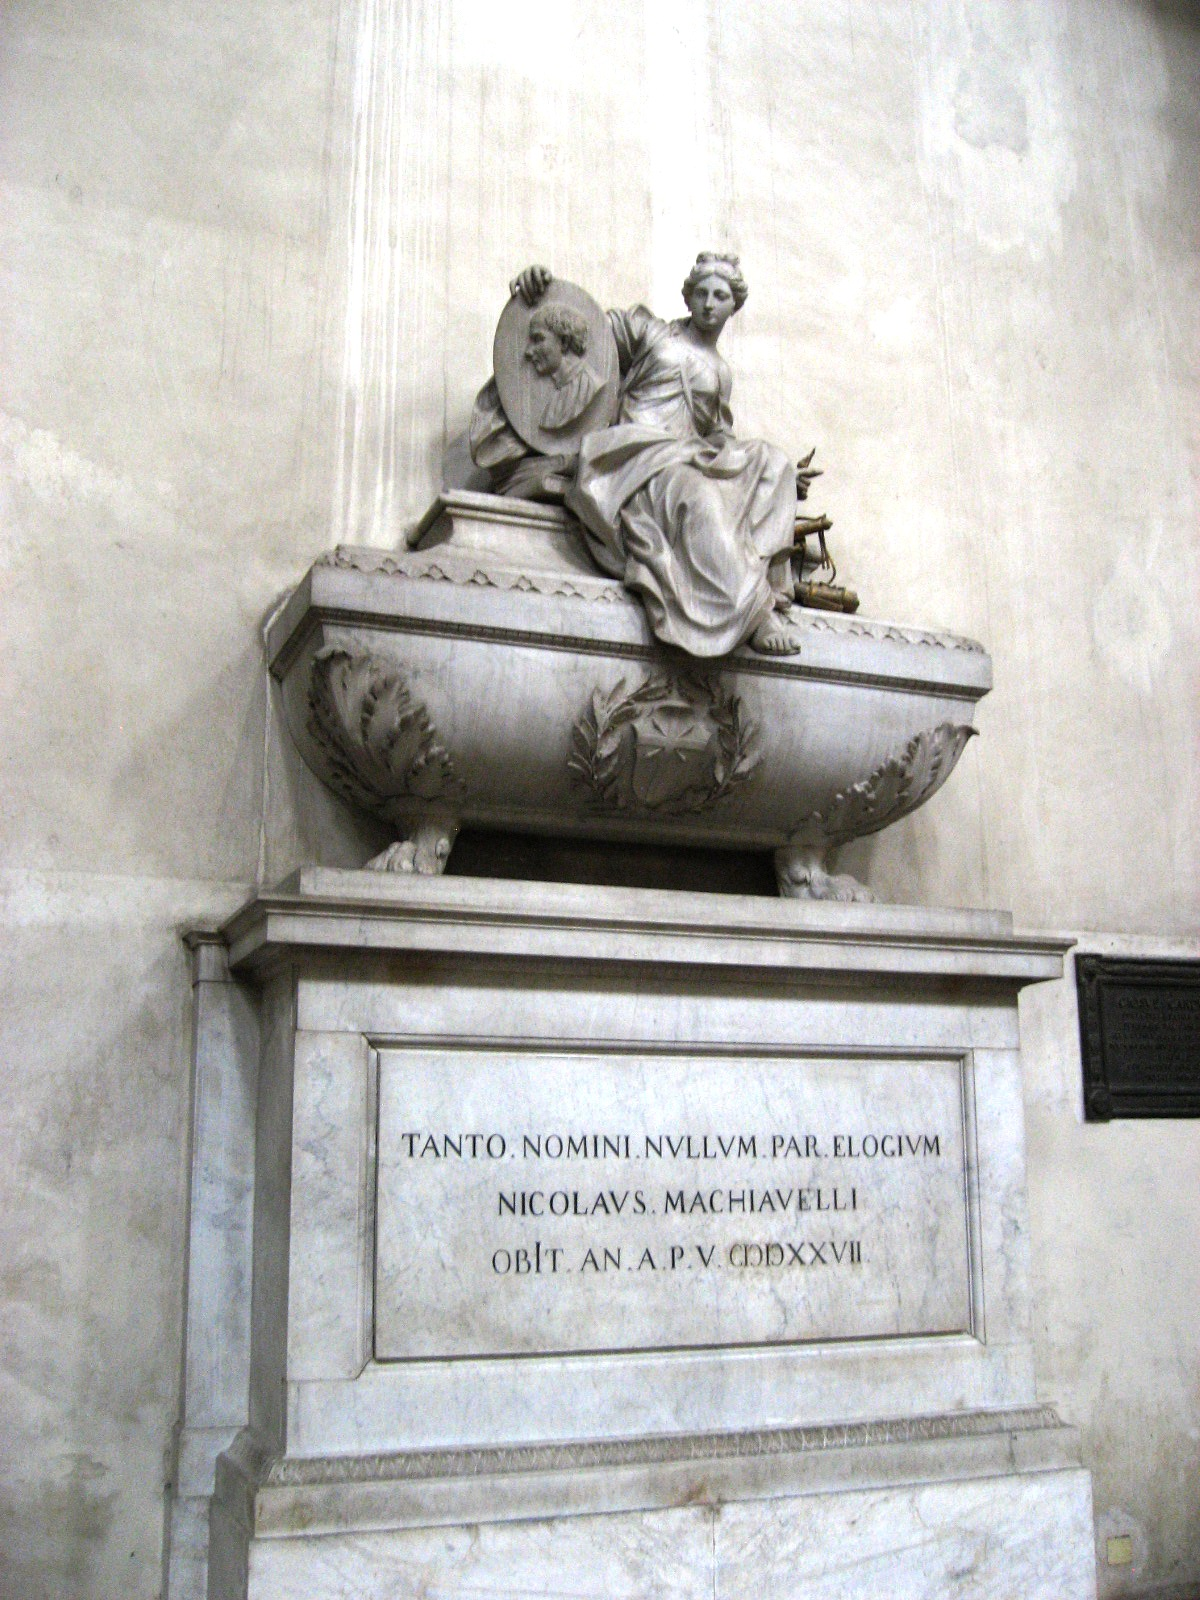 the prince by niccolo machiavelli vs book of the courtier by english tomb of niccolatildesup2 machiavelli in the basilica of santa croce in florence